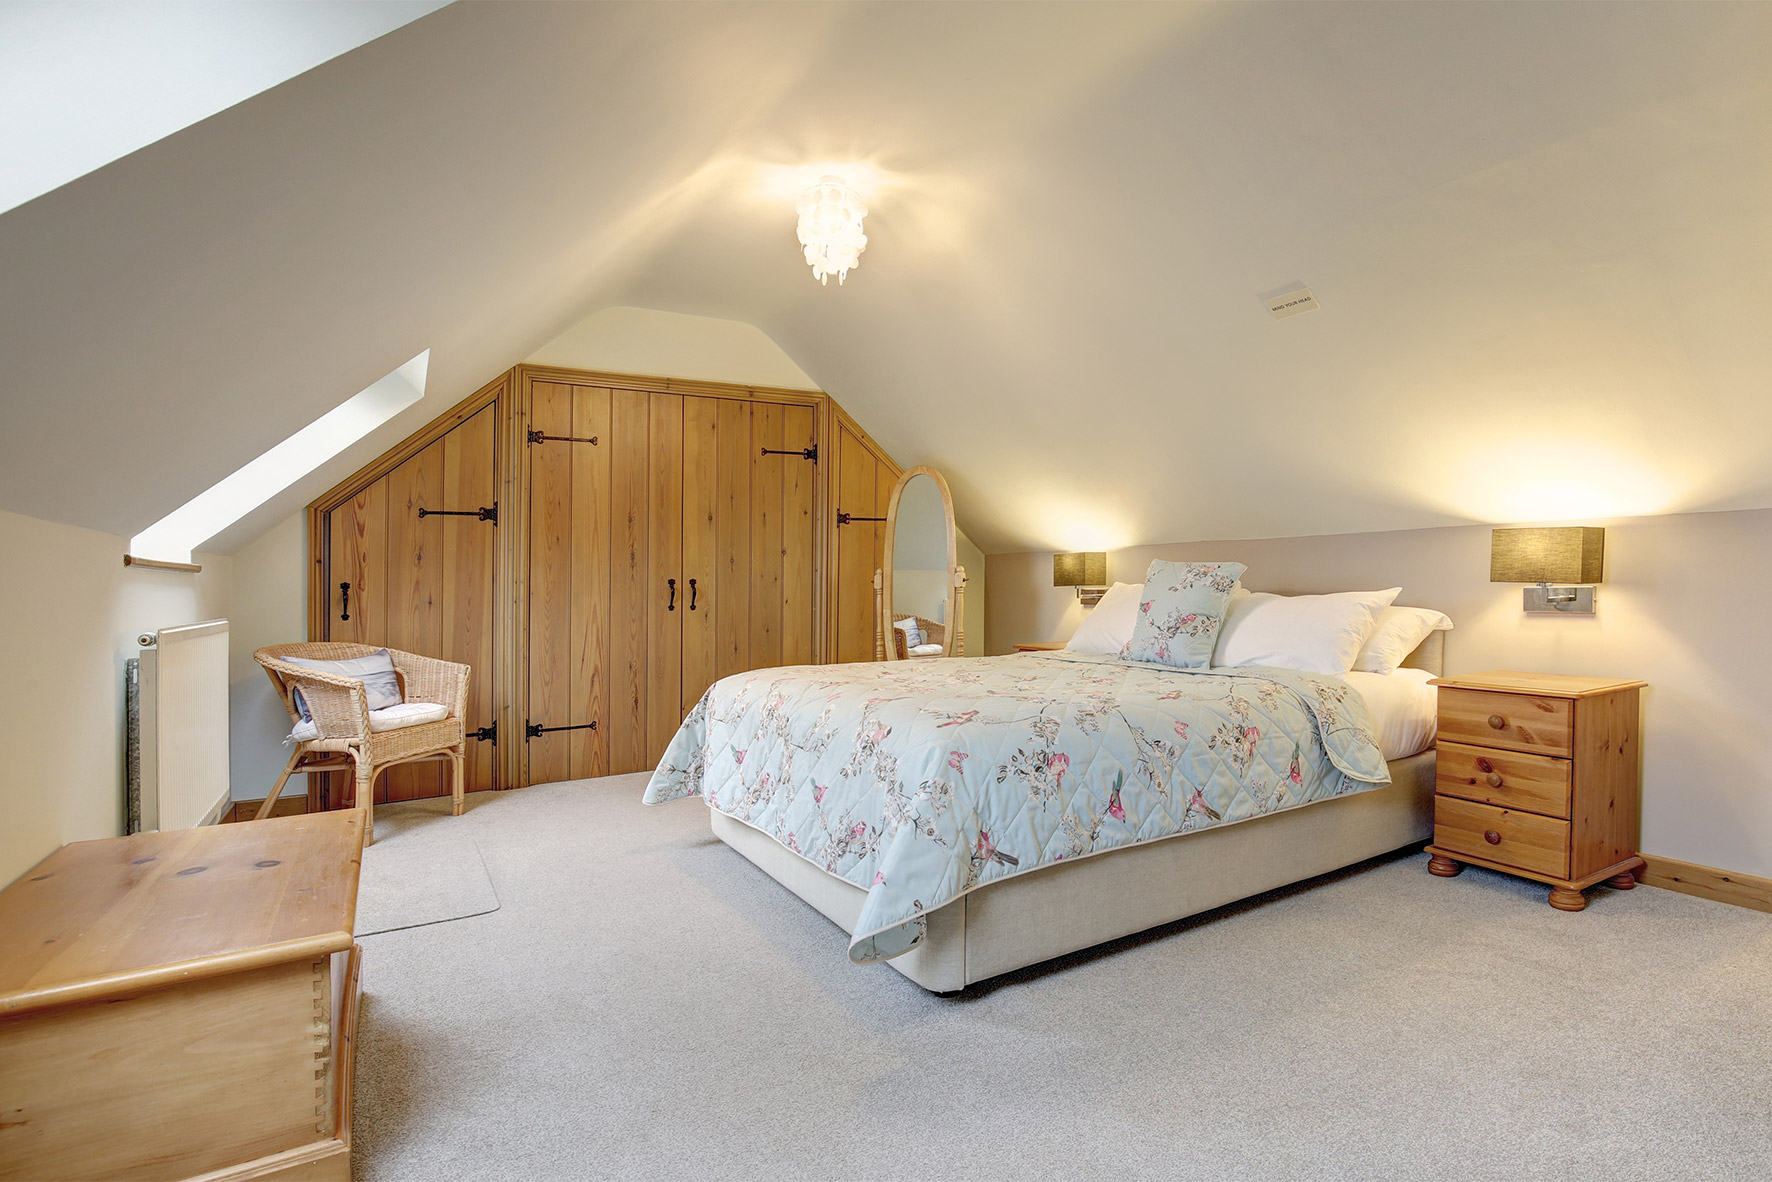 Lavender Barn - Double Bedroom 3